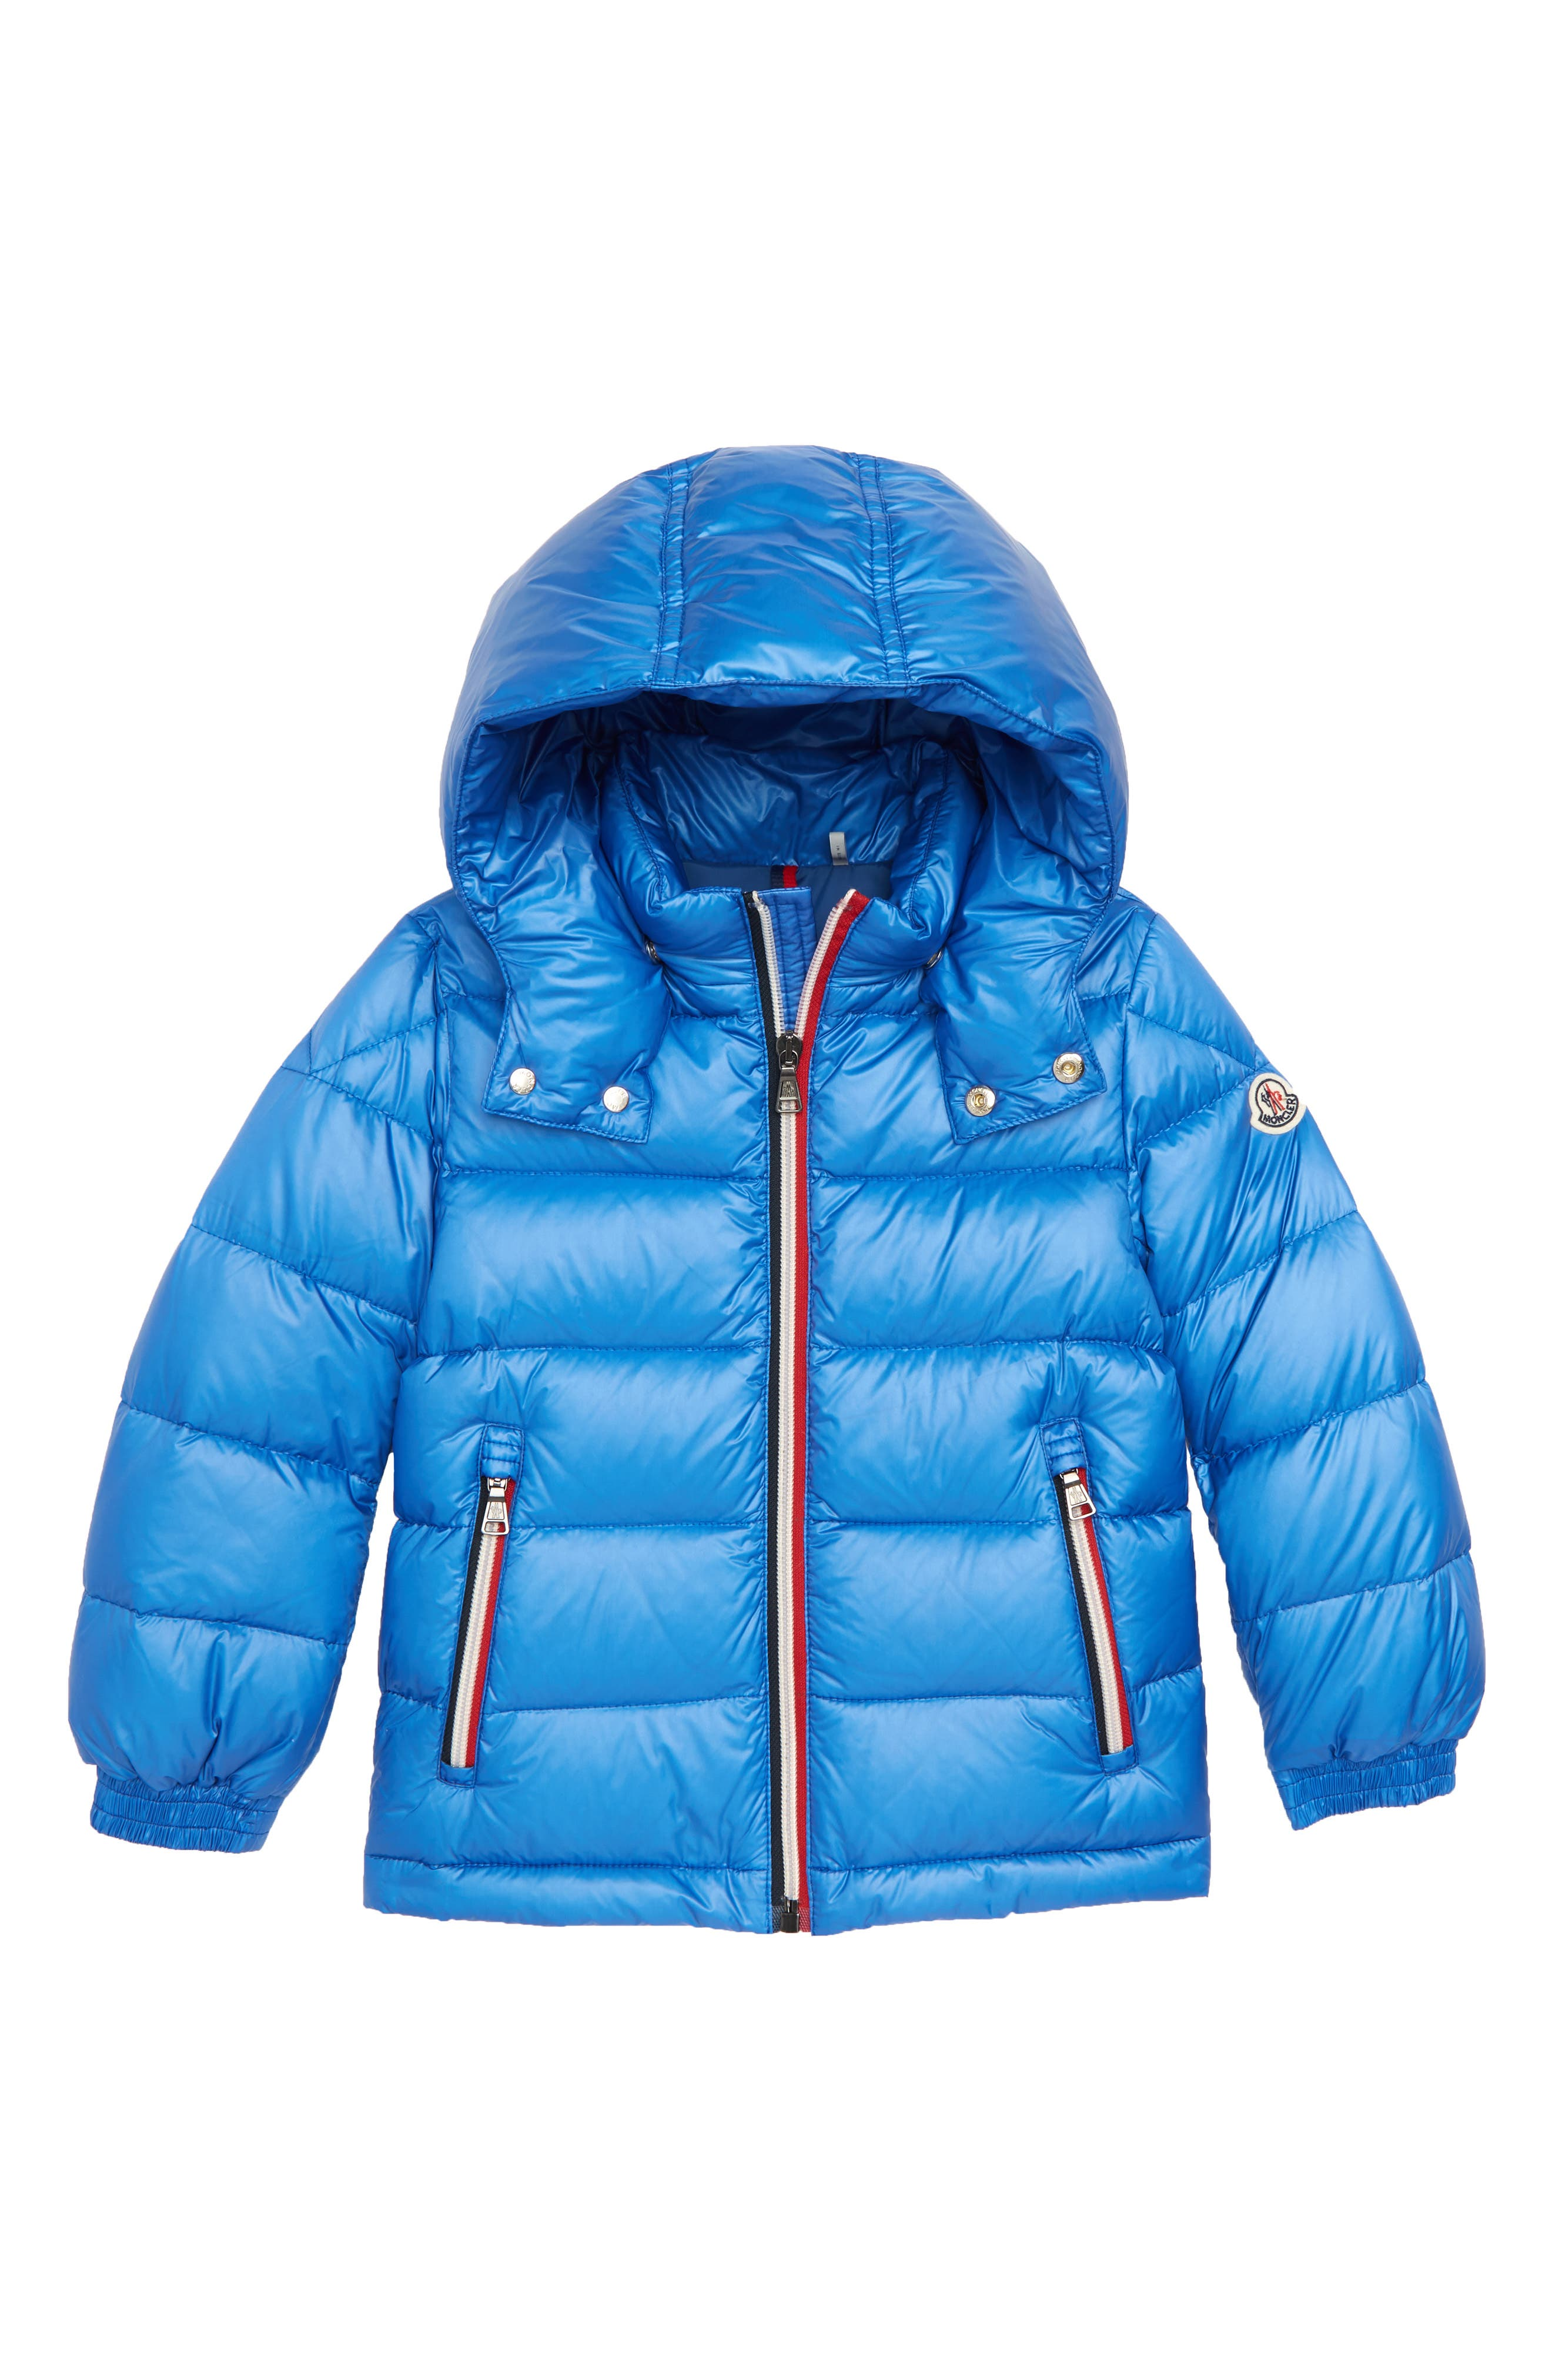 Gastonet Hooded Water Resistant Down Jacket,                         Main,                         color, BRIGHT BLUE